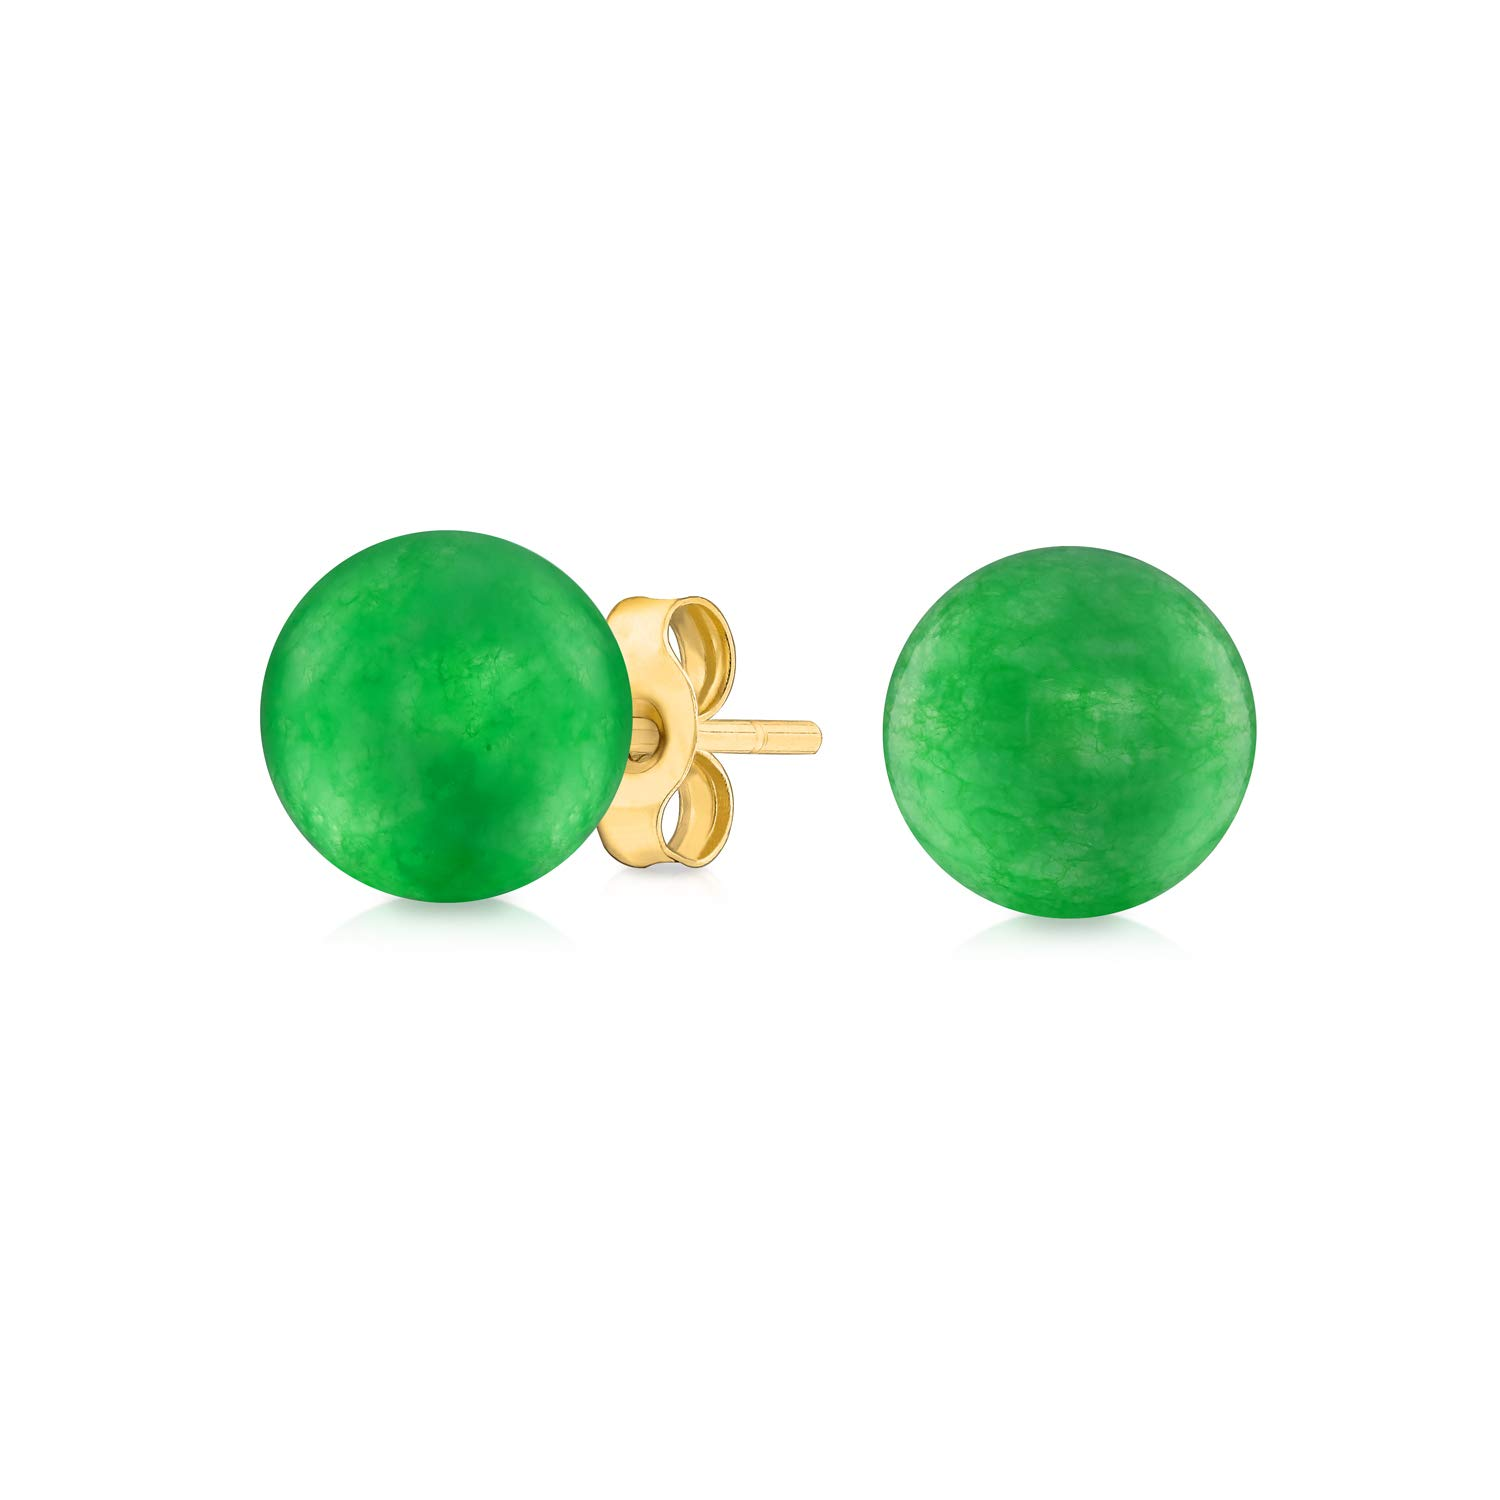 Simple Plain Round Gemstone Bead Ball Stud Earrings For Women For Teen 14K Yellow Real Gold 6mm More Birthstone Colors